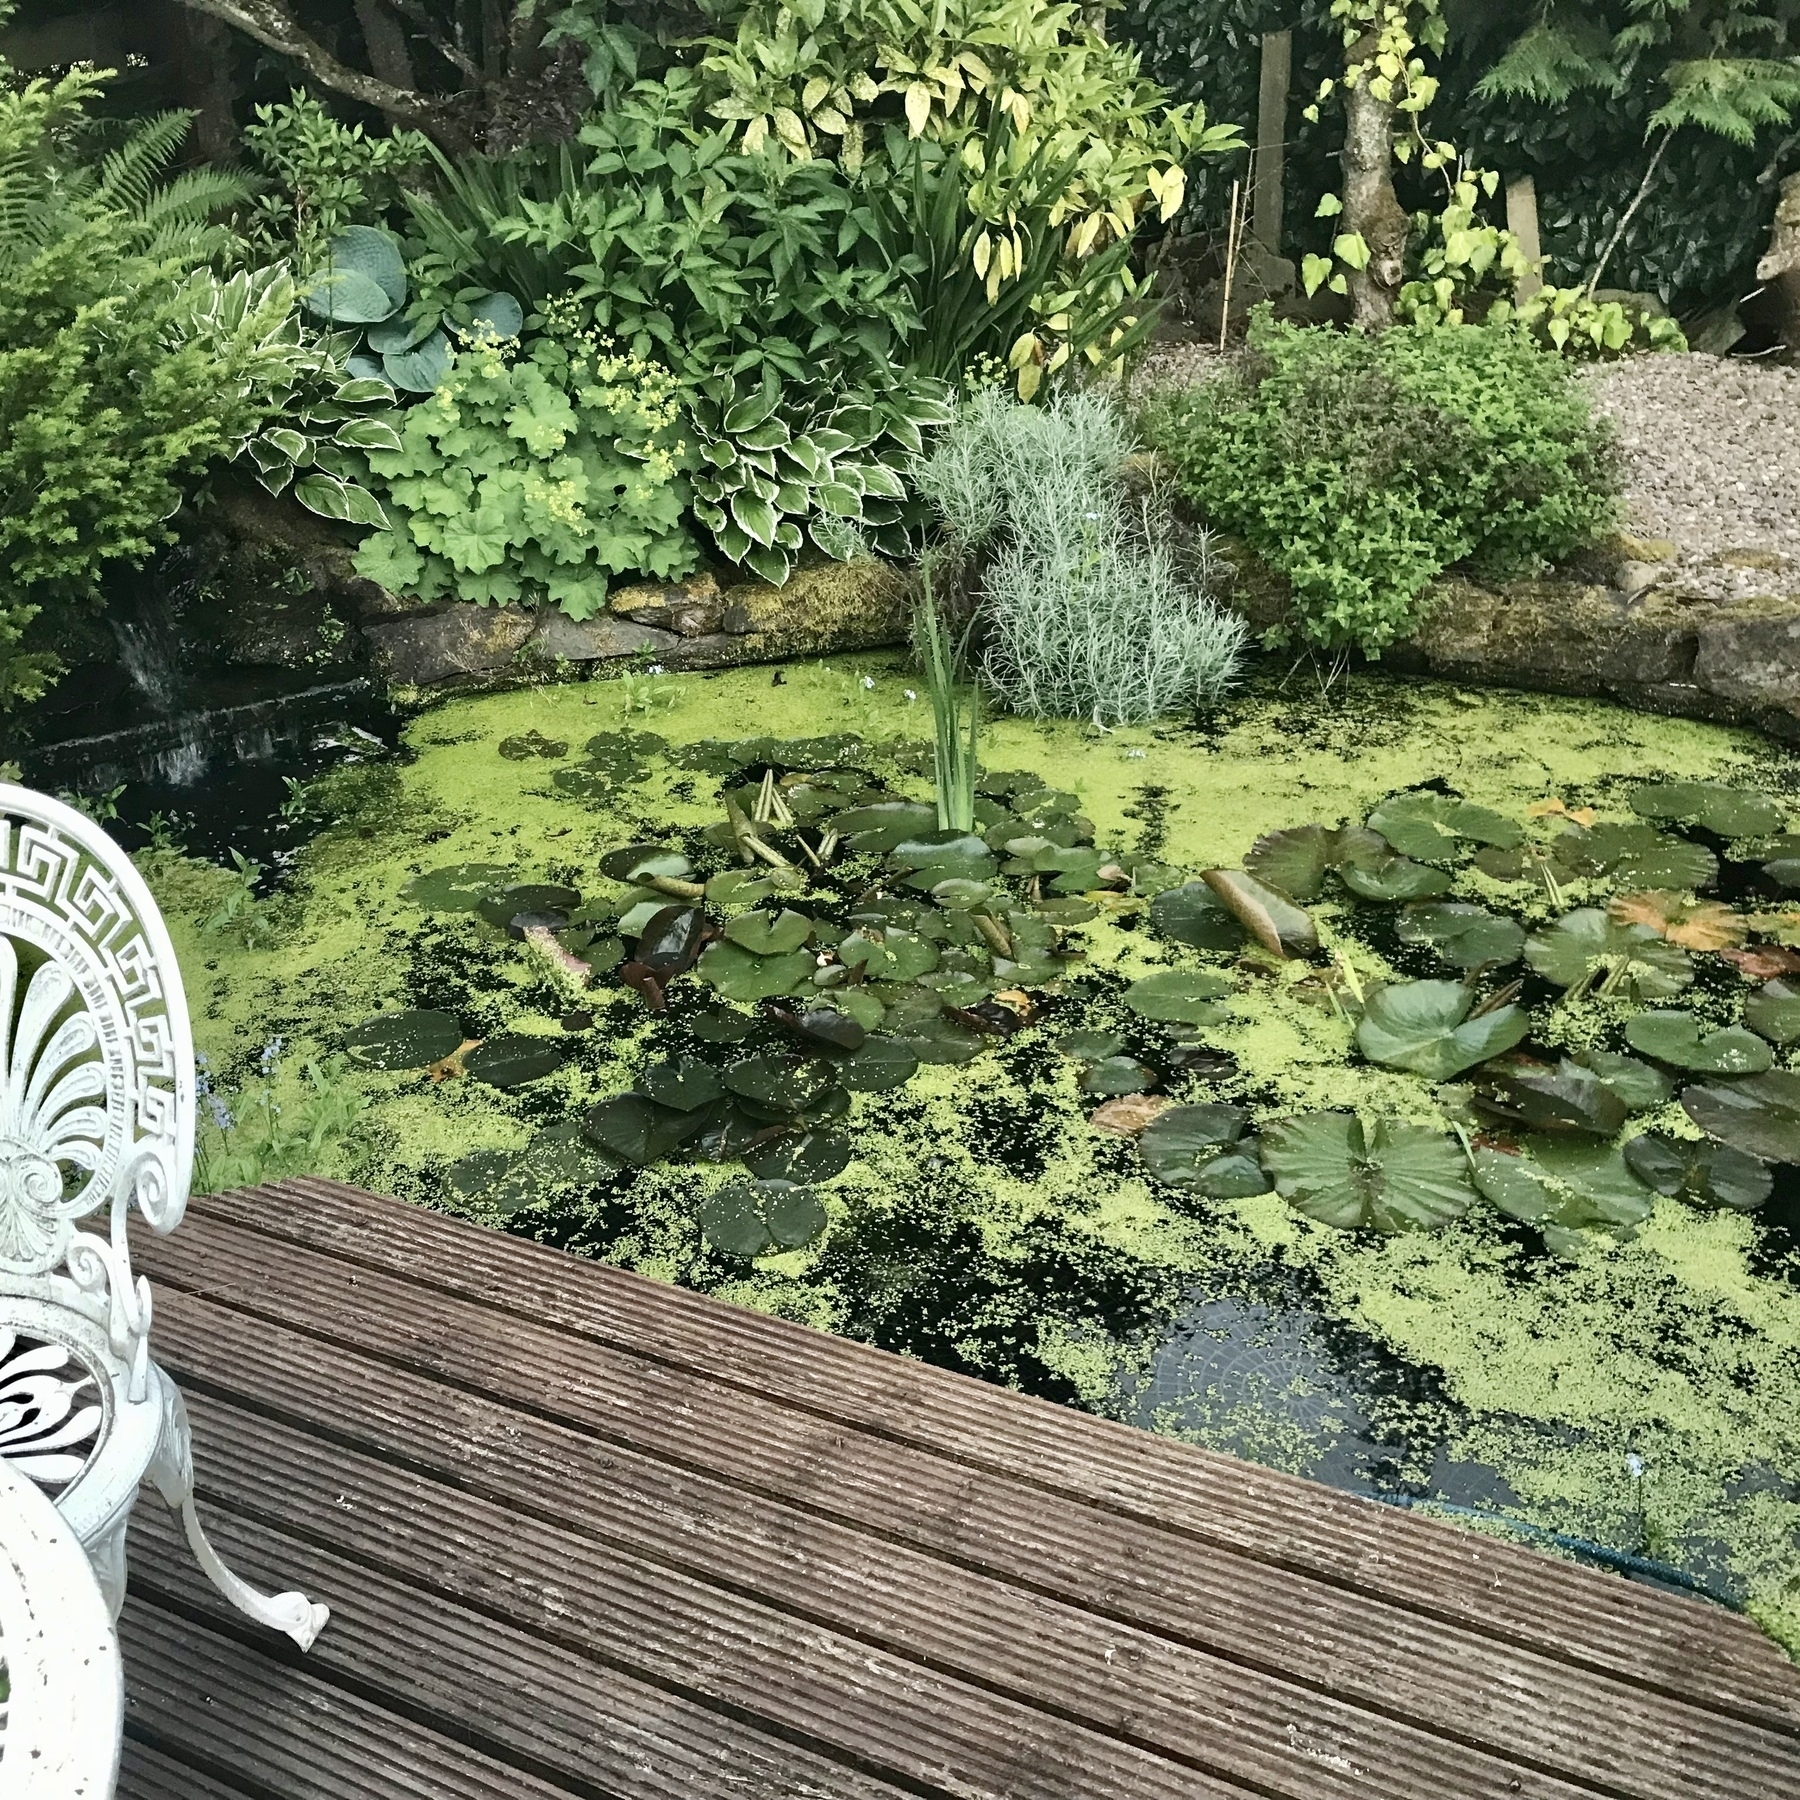 Tranquil pond with small waterfall.